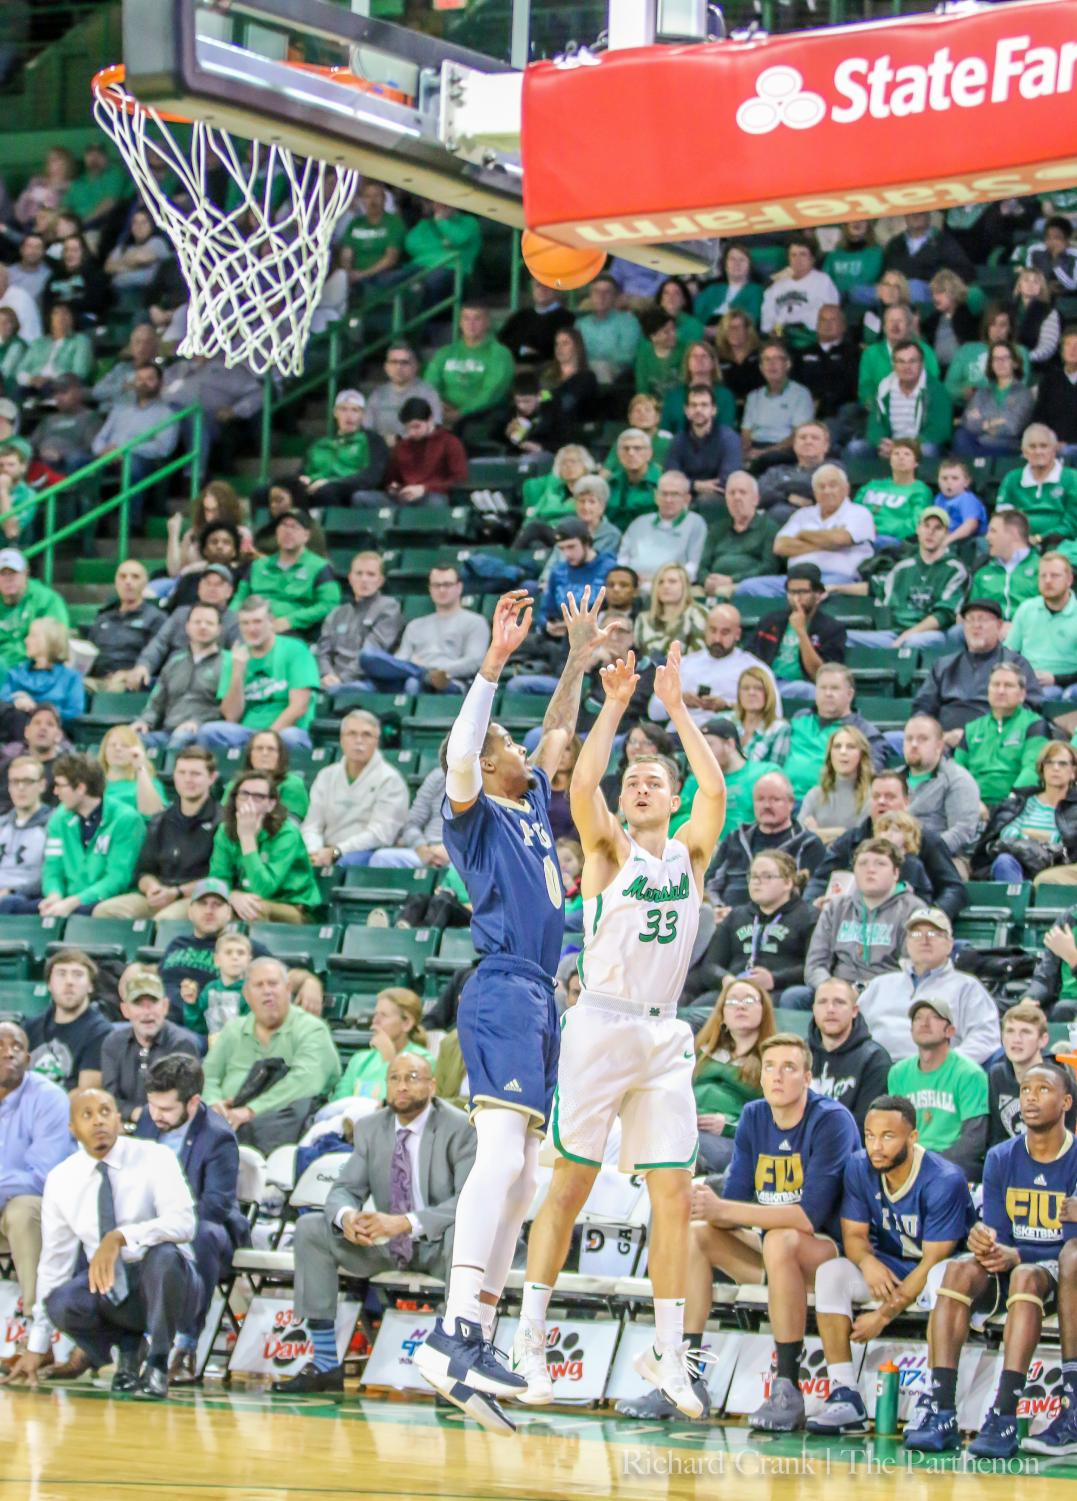 Marshall guard Jon Elmore (33) shoots a 3-pointer around an FIU defender during their matchup in the 2017-18 season. Elmore's shooting from beyond the arc is a staple in Marshall's offense.